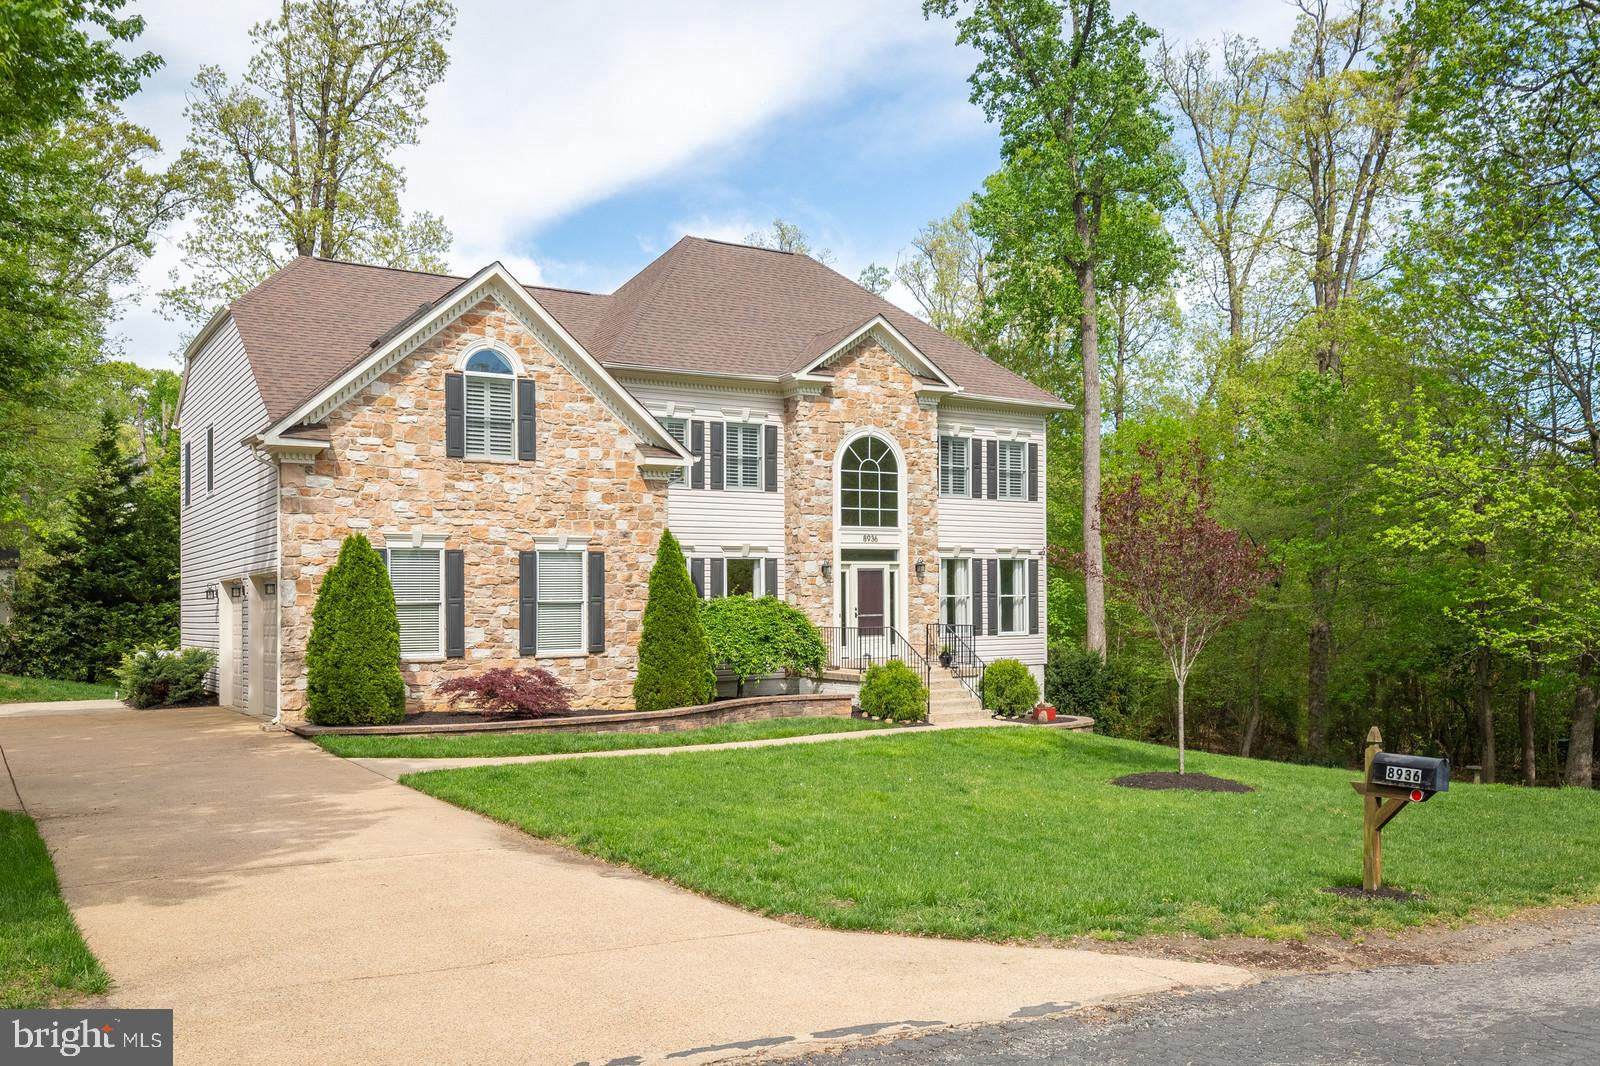 OPEN HOUSE SUNDAY APRIL 28th from 1 - 4pm.   This Home is Absolutely AMAZING! 4 Bedroom, 3.5 Bathroom Home with a 2 Car Side Load Garage on a Beautiful 1/2 Acre Lot.  Hardwood Floors on the Main Level, Great Family Room with Floor to Ceiling Stone Fireplace and Tons of Windows to Bring in the Natural Light. Kitchen: Gourmet Kitchen with Granite Counter Tops, Upgrade Maple Cabinets with Pull-out Drawers, Cooktop, Wall Oven. Main Level Home Office. Huge Master Bedroom Suite w/ His/Her Walk-in Closets & Luxury Master Bathroom. Finished Walk-Out Basement, Entertainment Area, Home Gym Area, Wine Cellar, Low Maintenance Deck, Hot Tub, Firepit Area ... The list goes on and on.  This home is Truly Amazing and in Move in Condition.. No HOA.